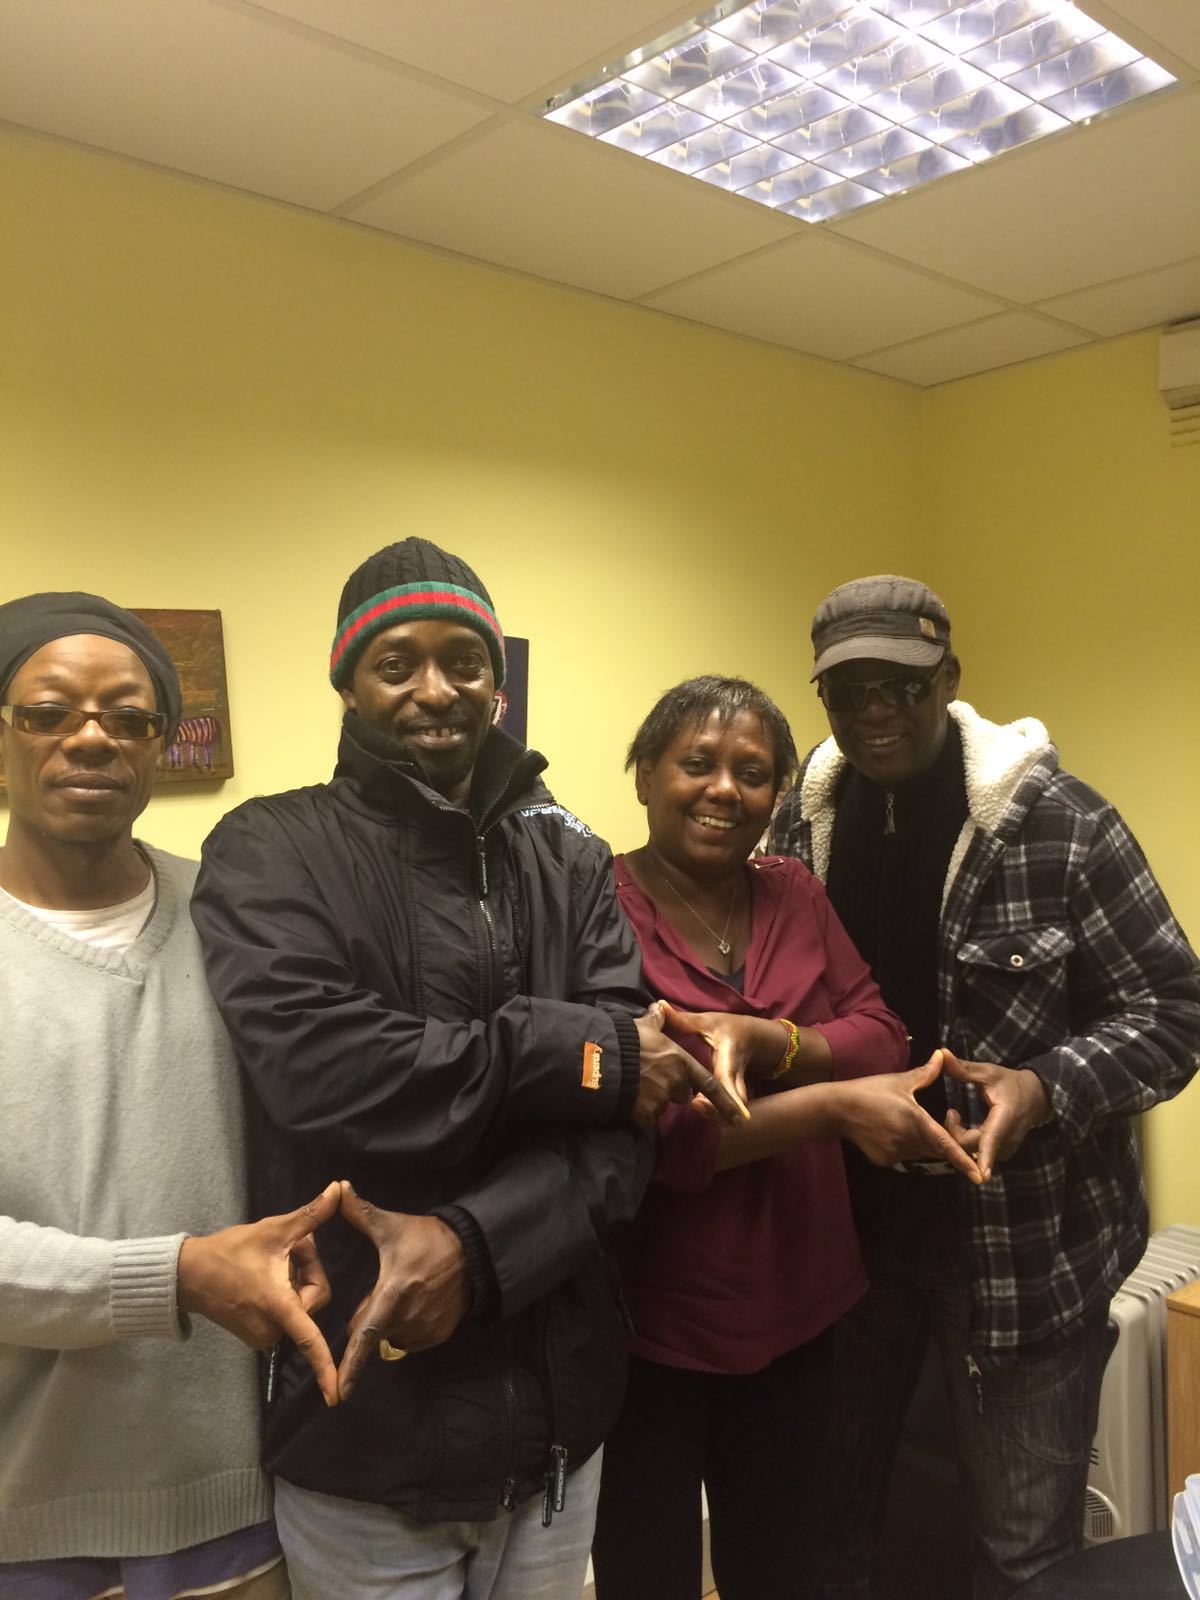 Selecta Culture, Bobby Sparks, Angie Ray & Patrick Boothe